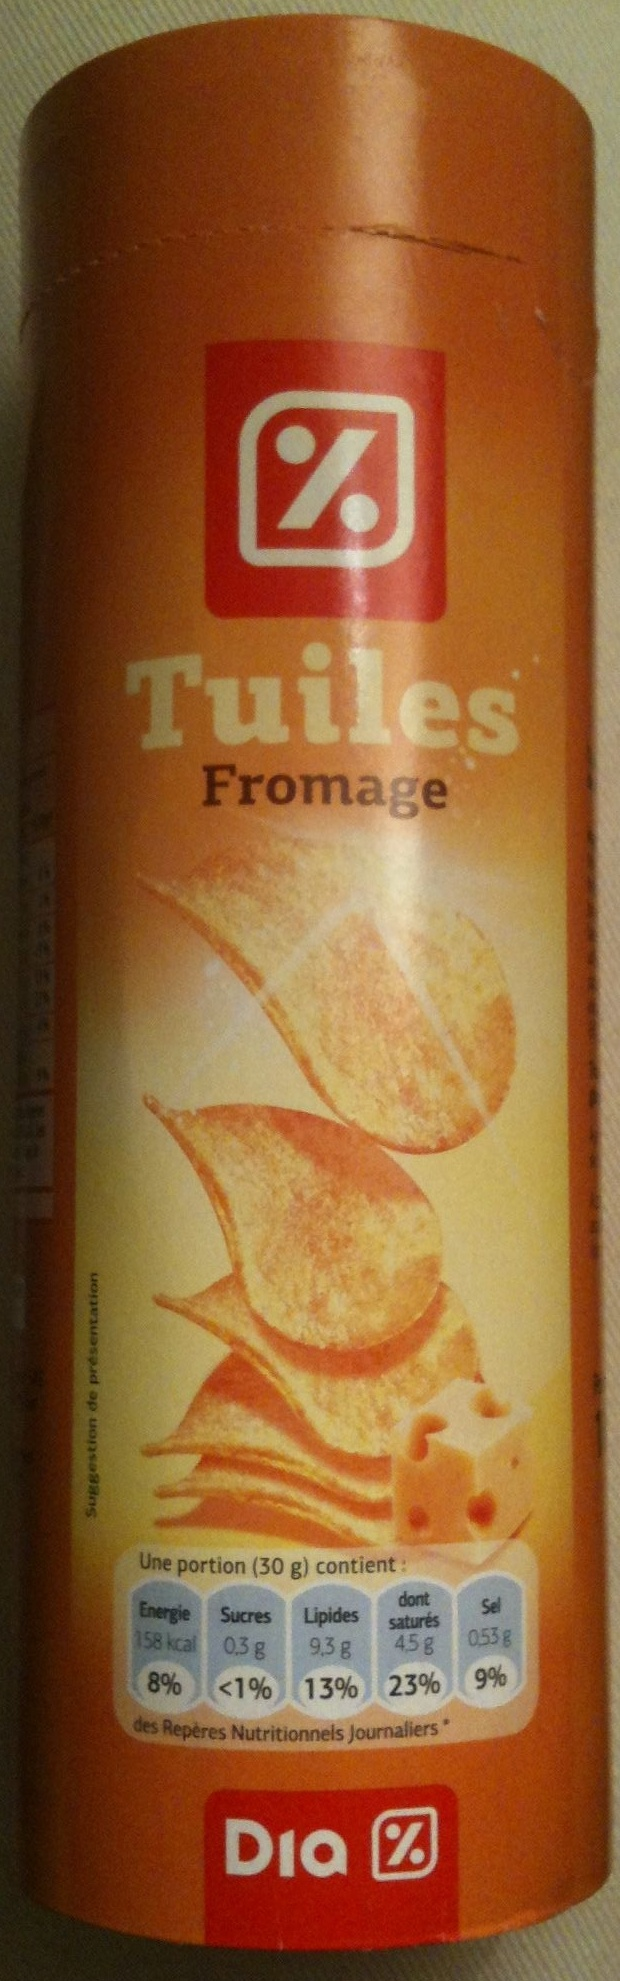 Tuiles Fromage - Produit